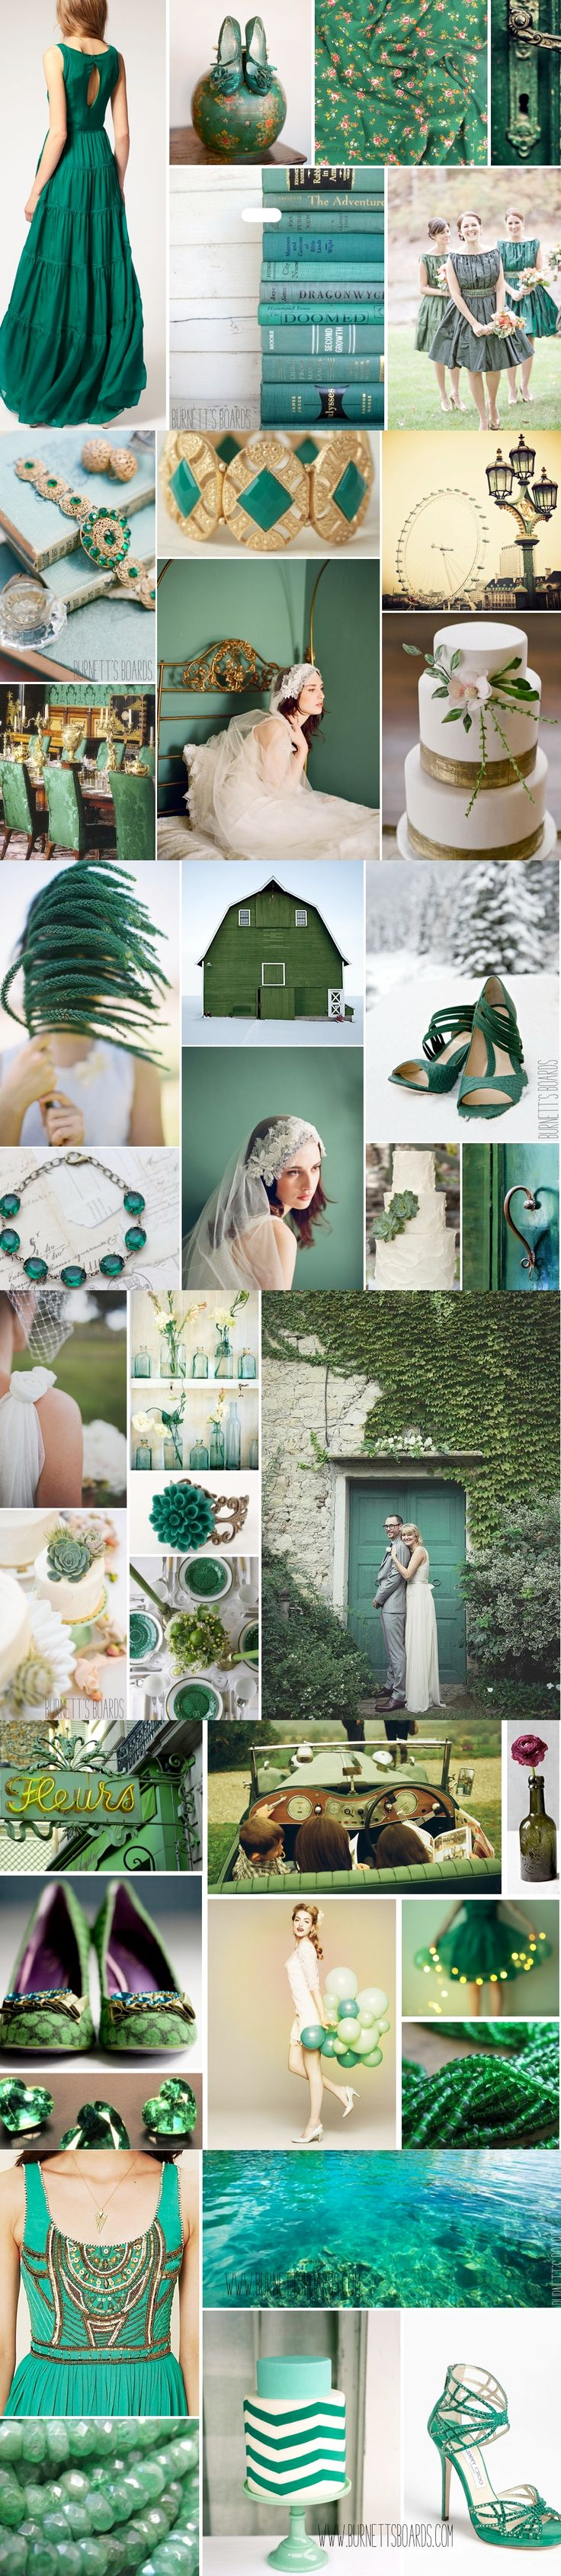 Emerald: Pantone's Color of the Year for 2013 wedding inspiration